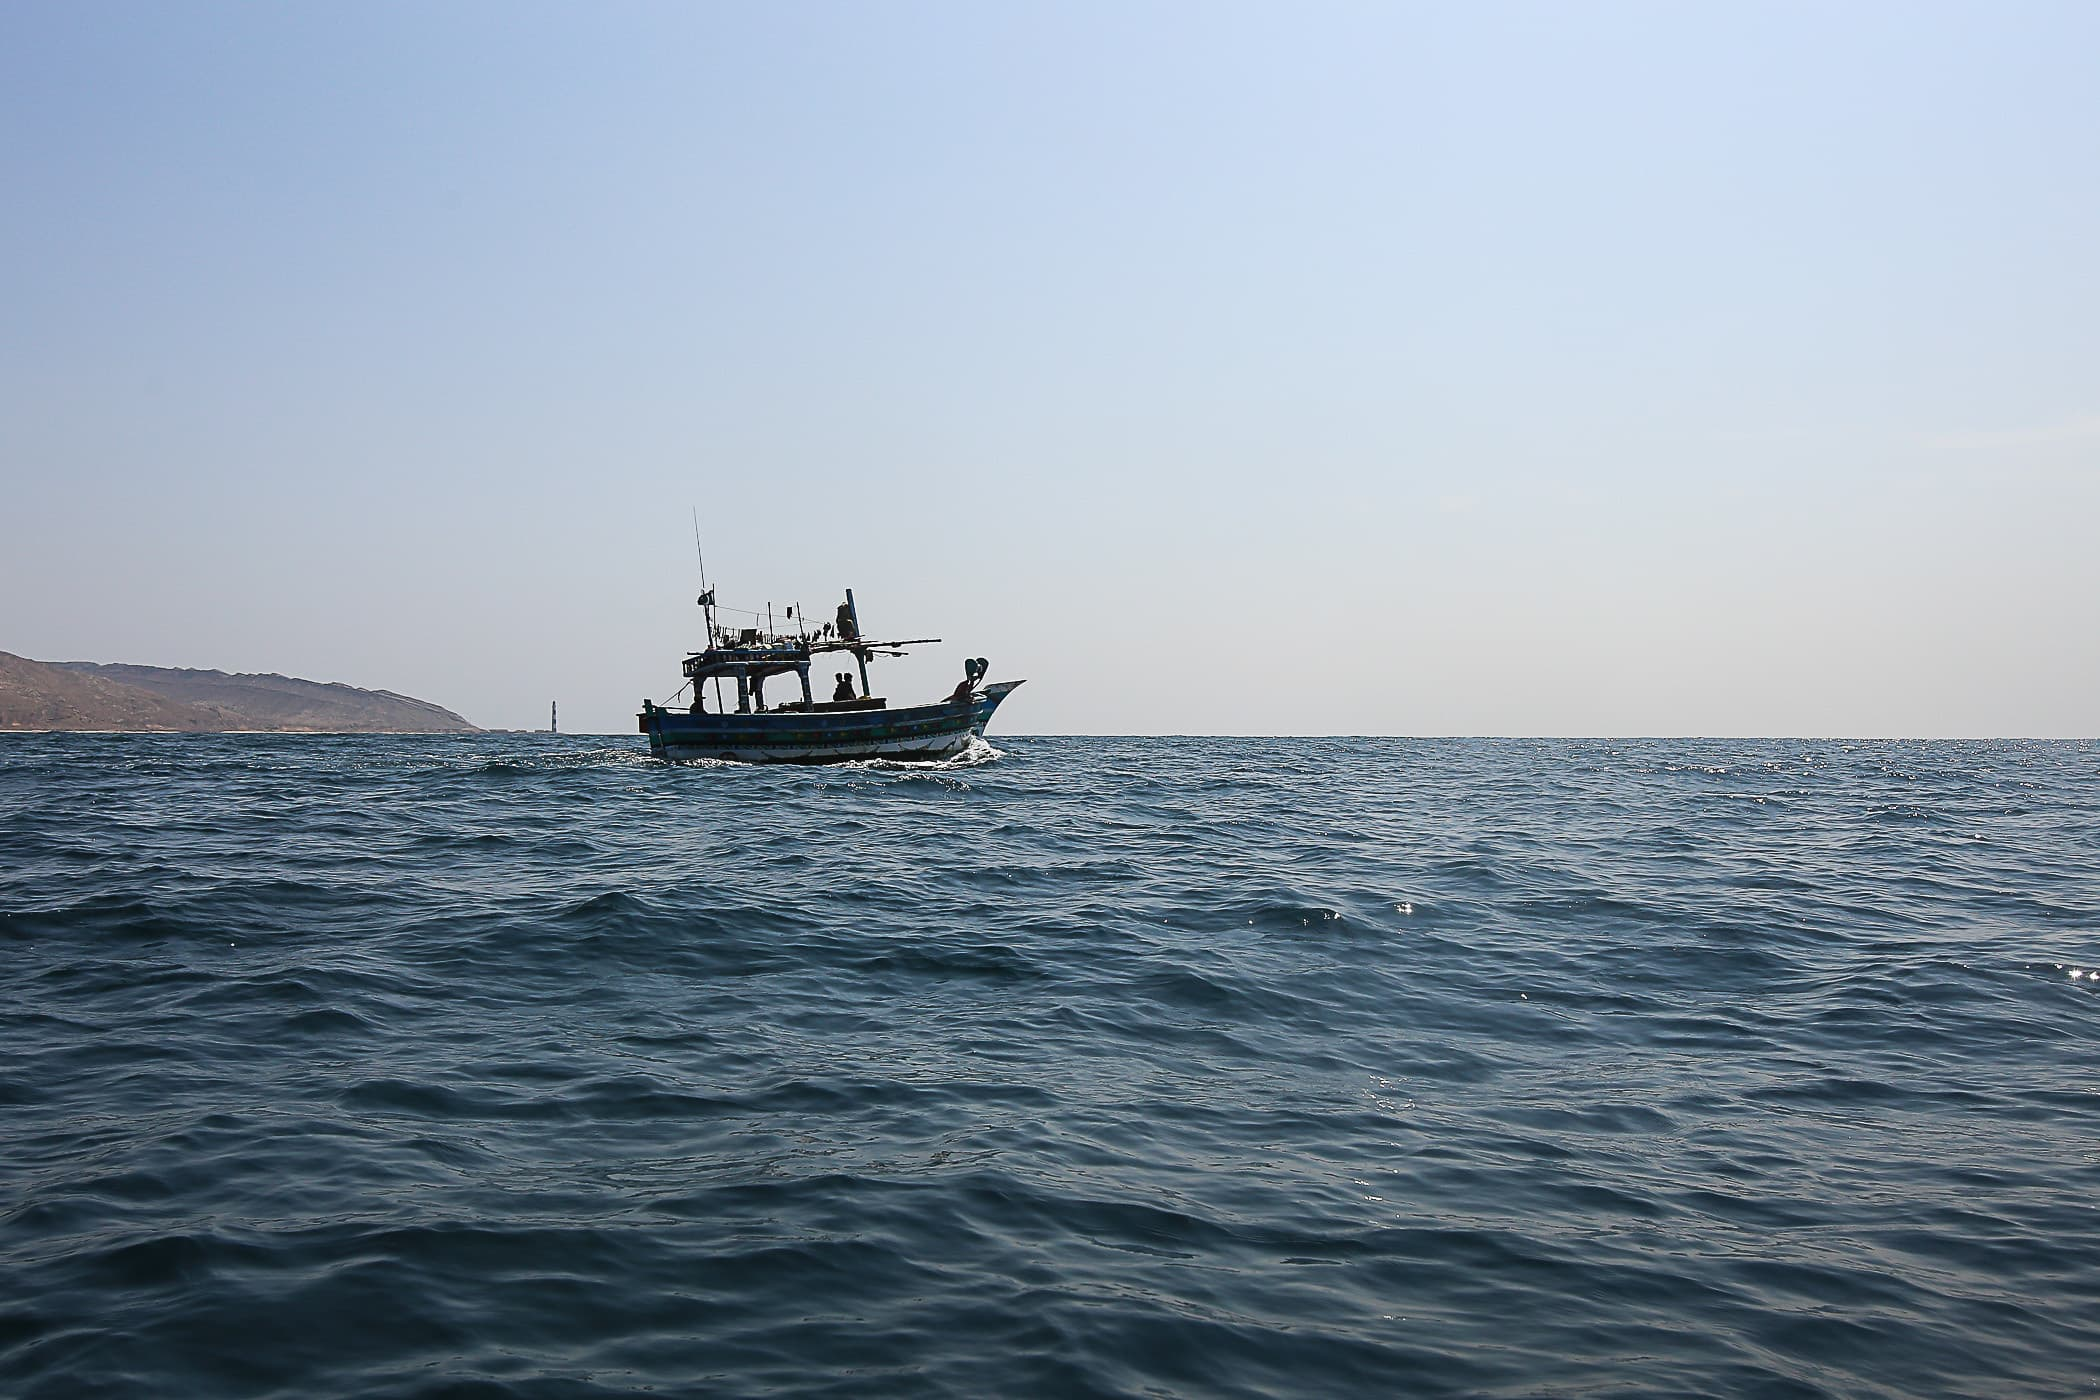 A small trawler heads out into the ocean to fish.